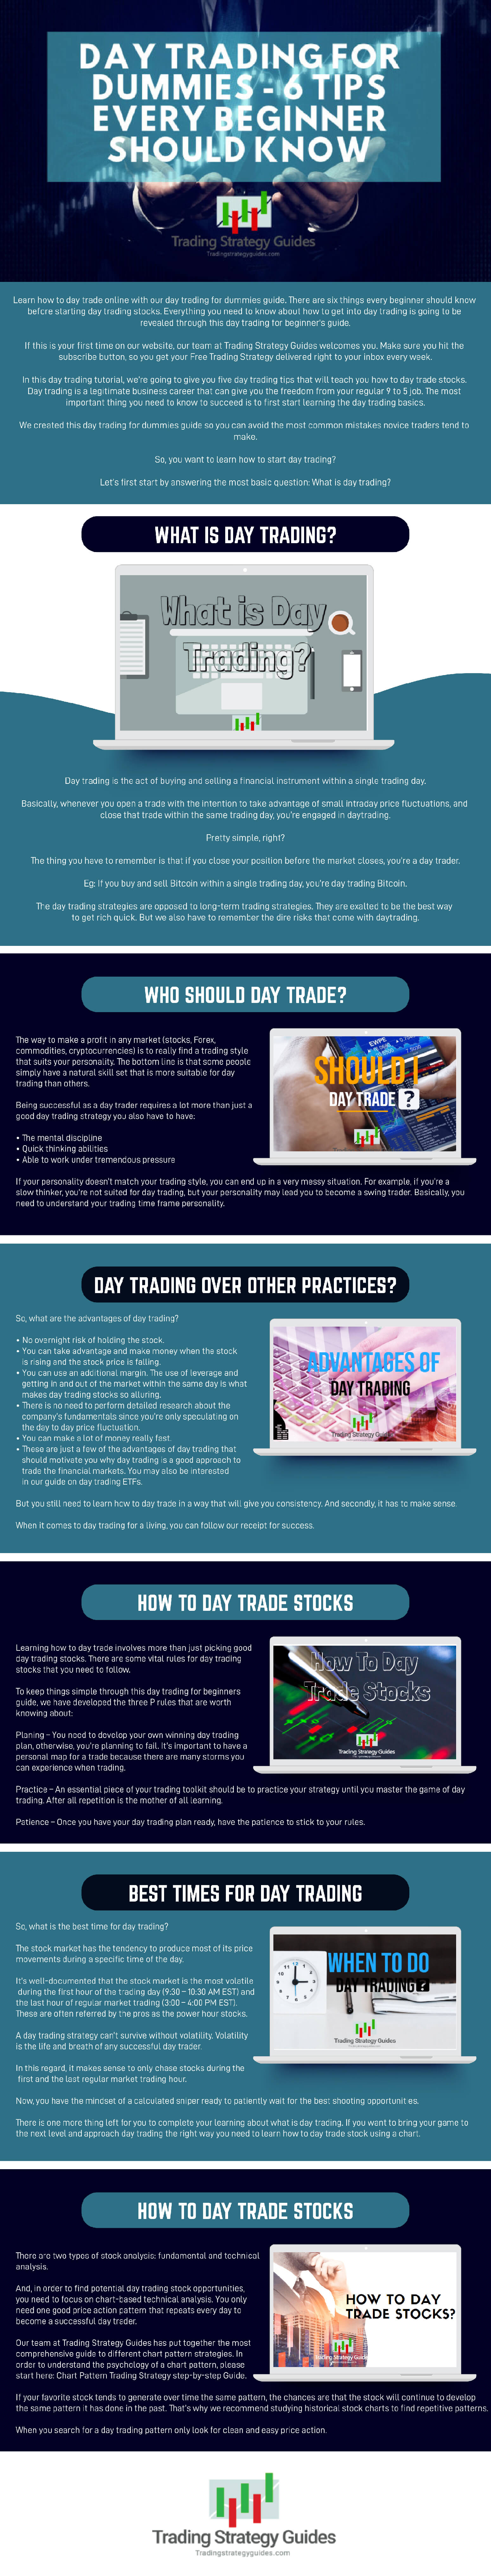 Day Trading for Dummies (6 Tips Every Beginner Should Know)